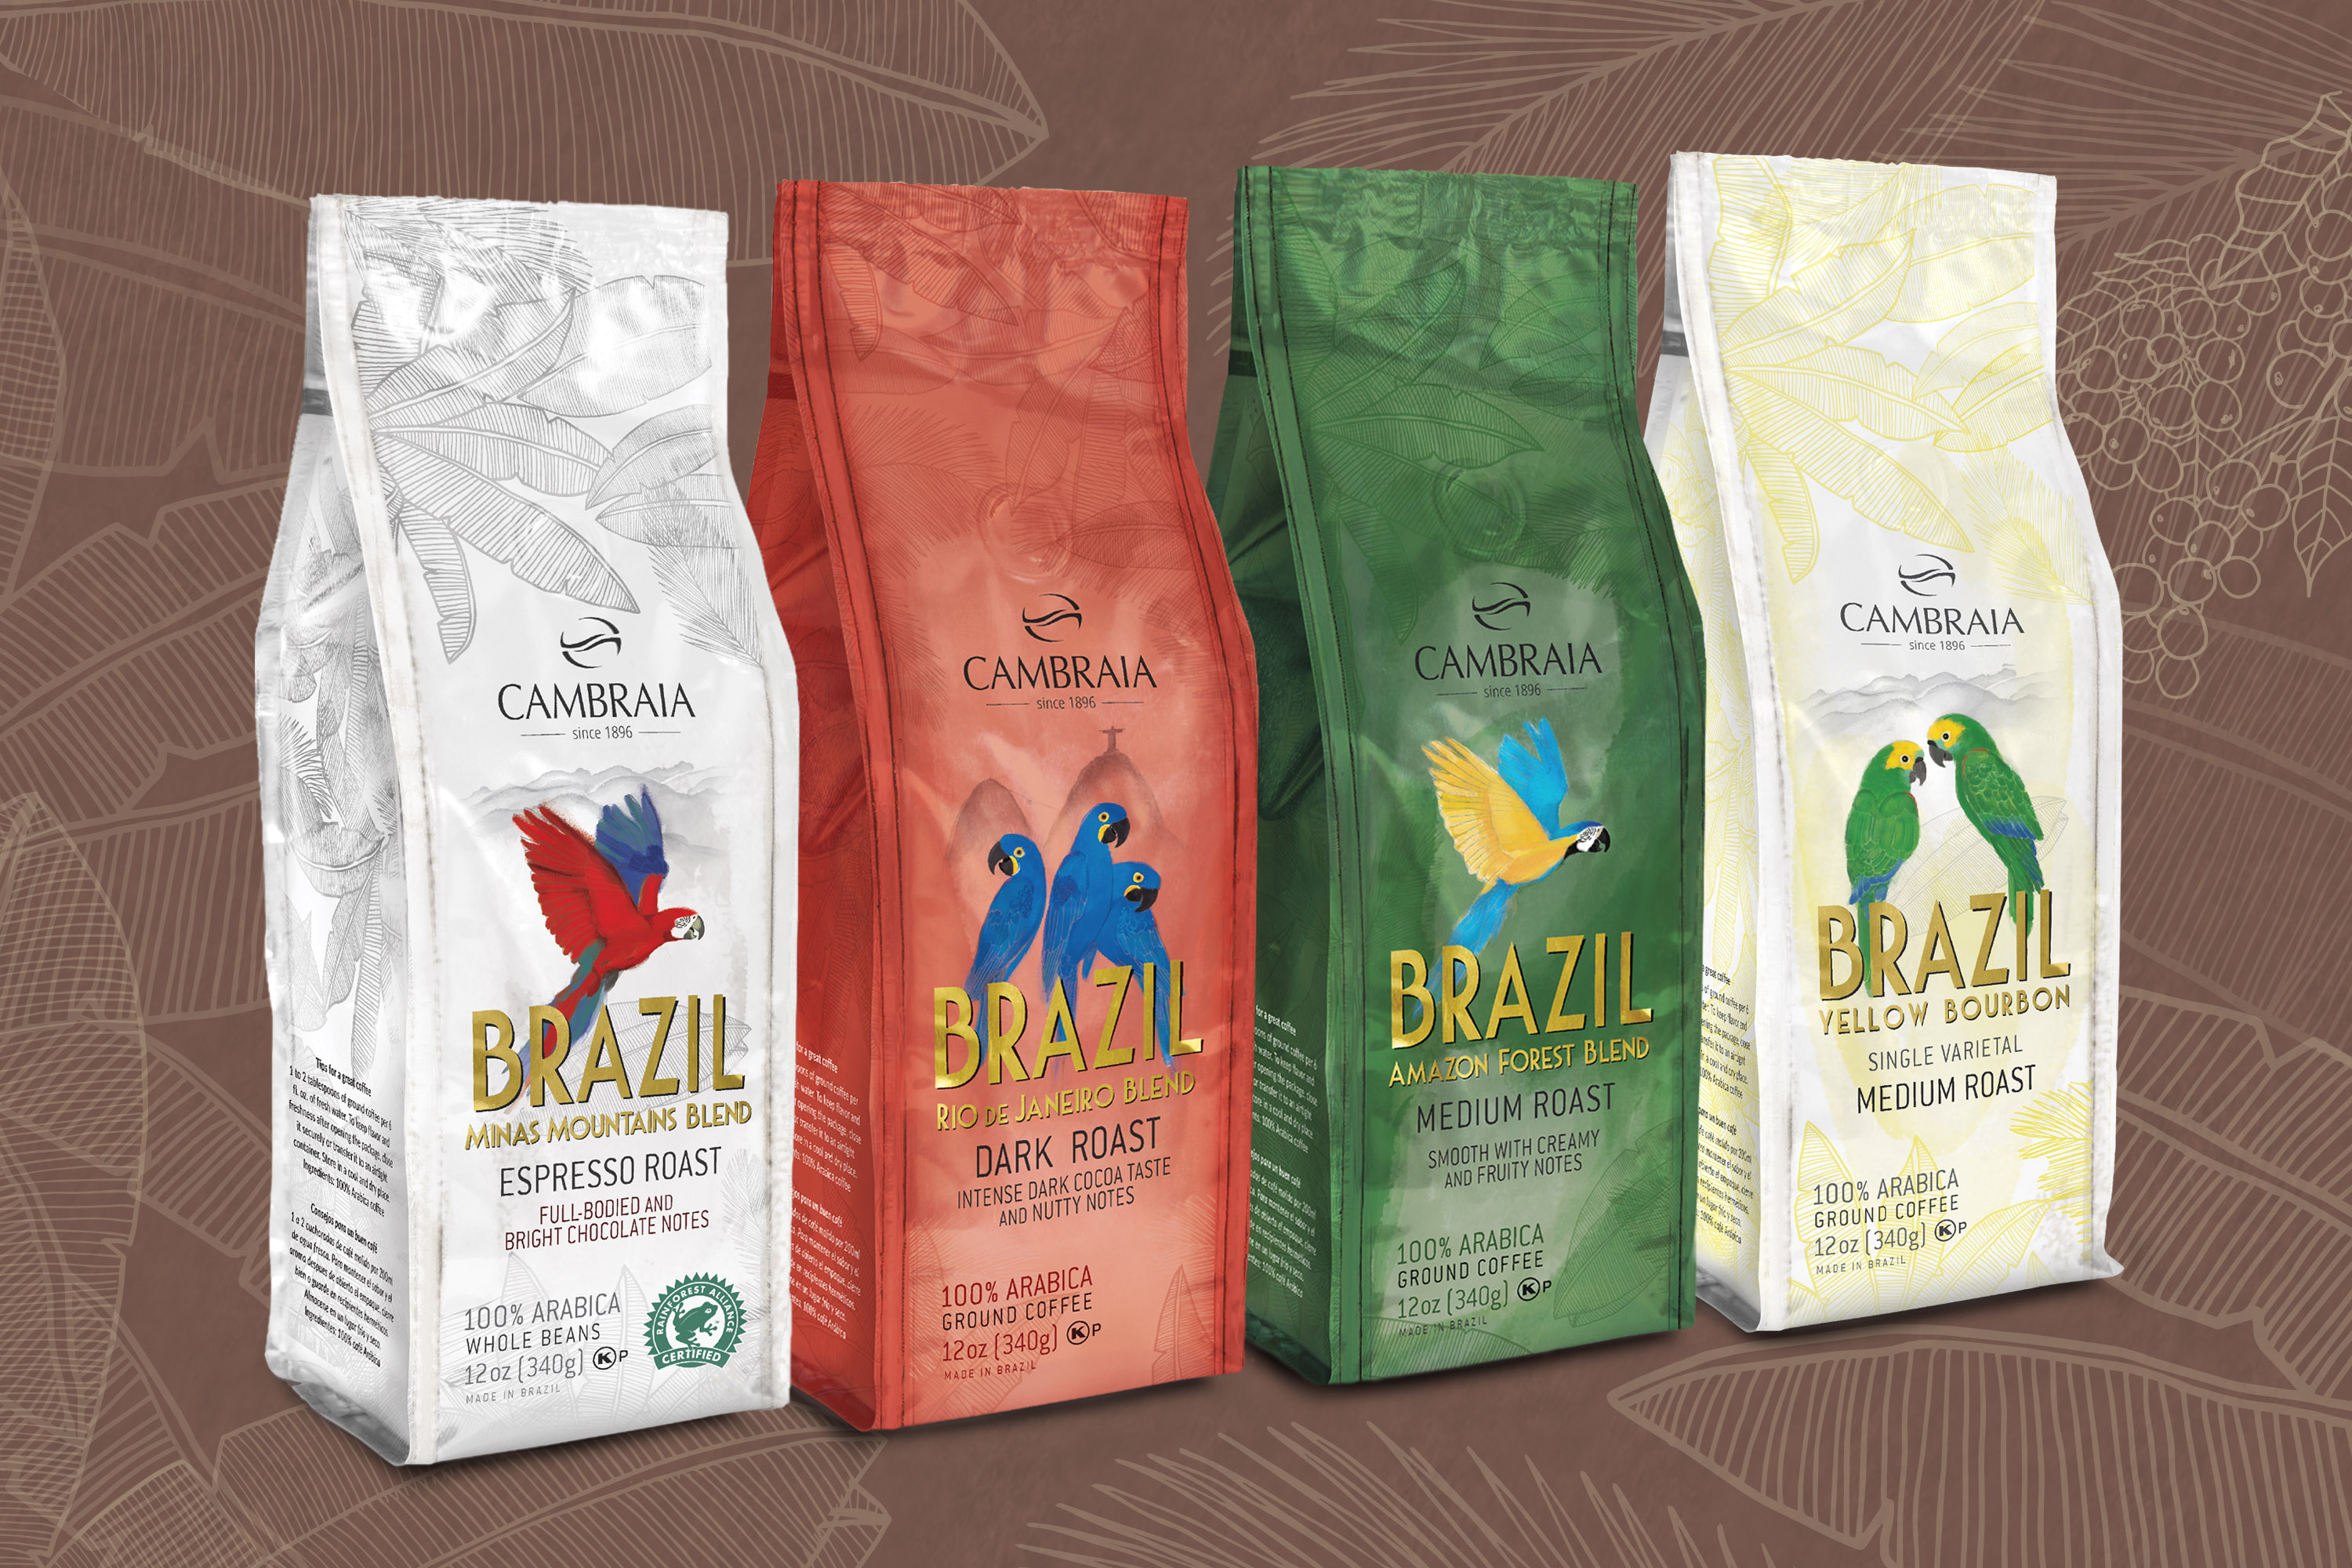 Cambraia's line of Brazilian Coffees